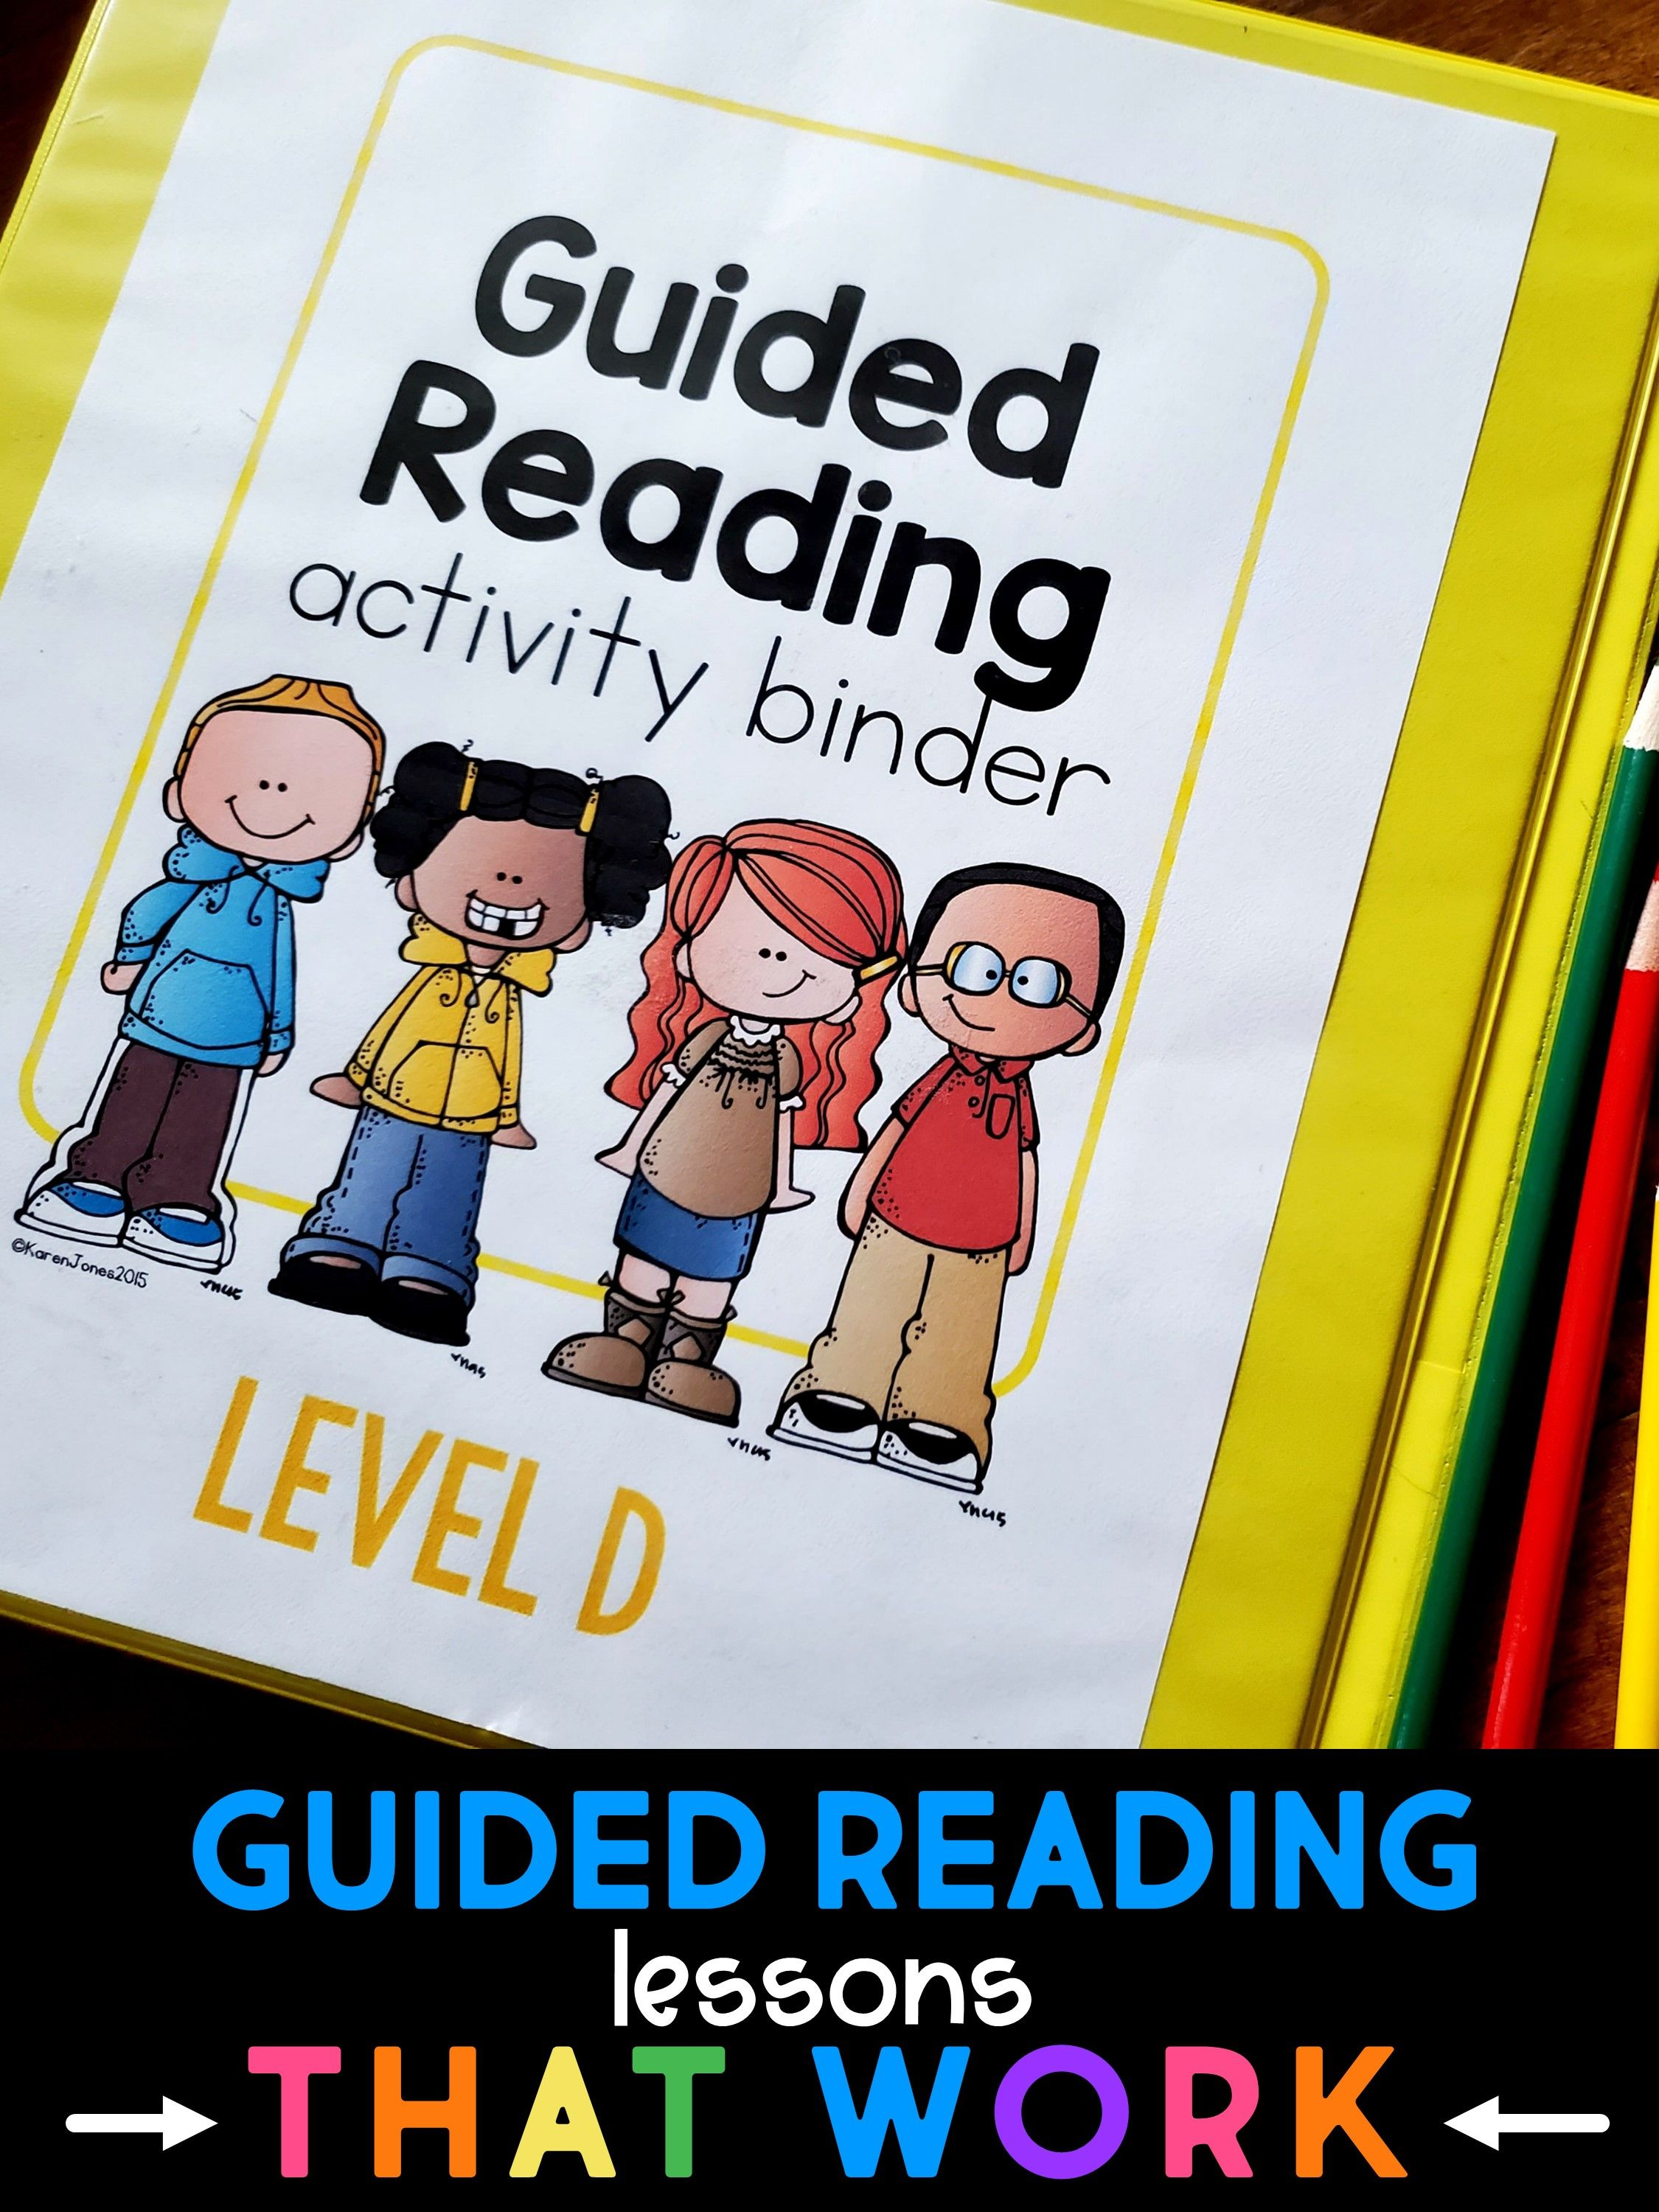 Guided Reading Lesson Plans In 2020 Guided Reading Lessons Guided Reading Lesson Plans Guided Reading Guided reading lesson grade video